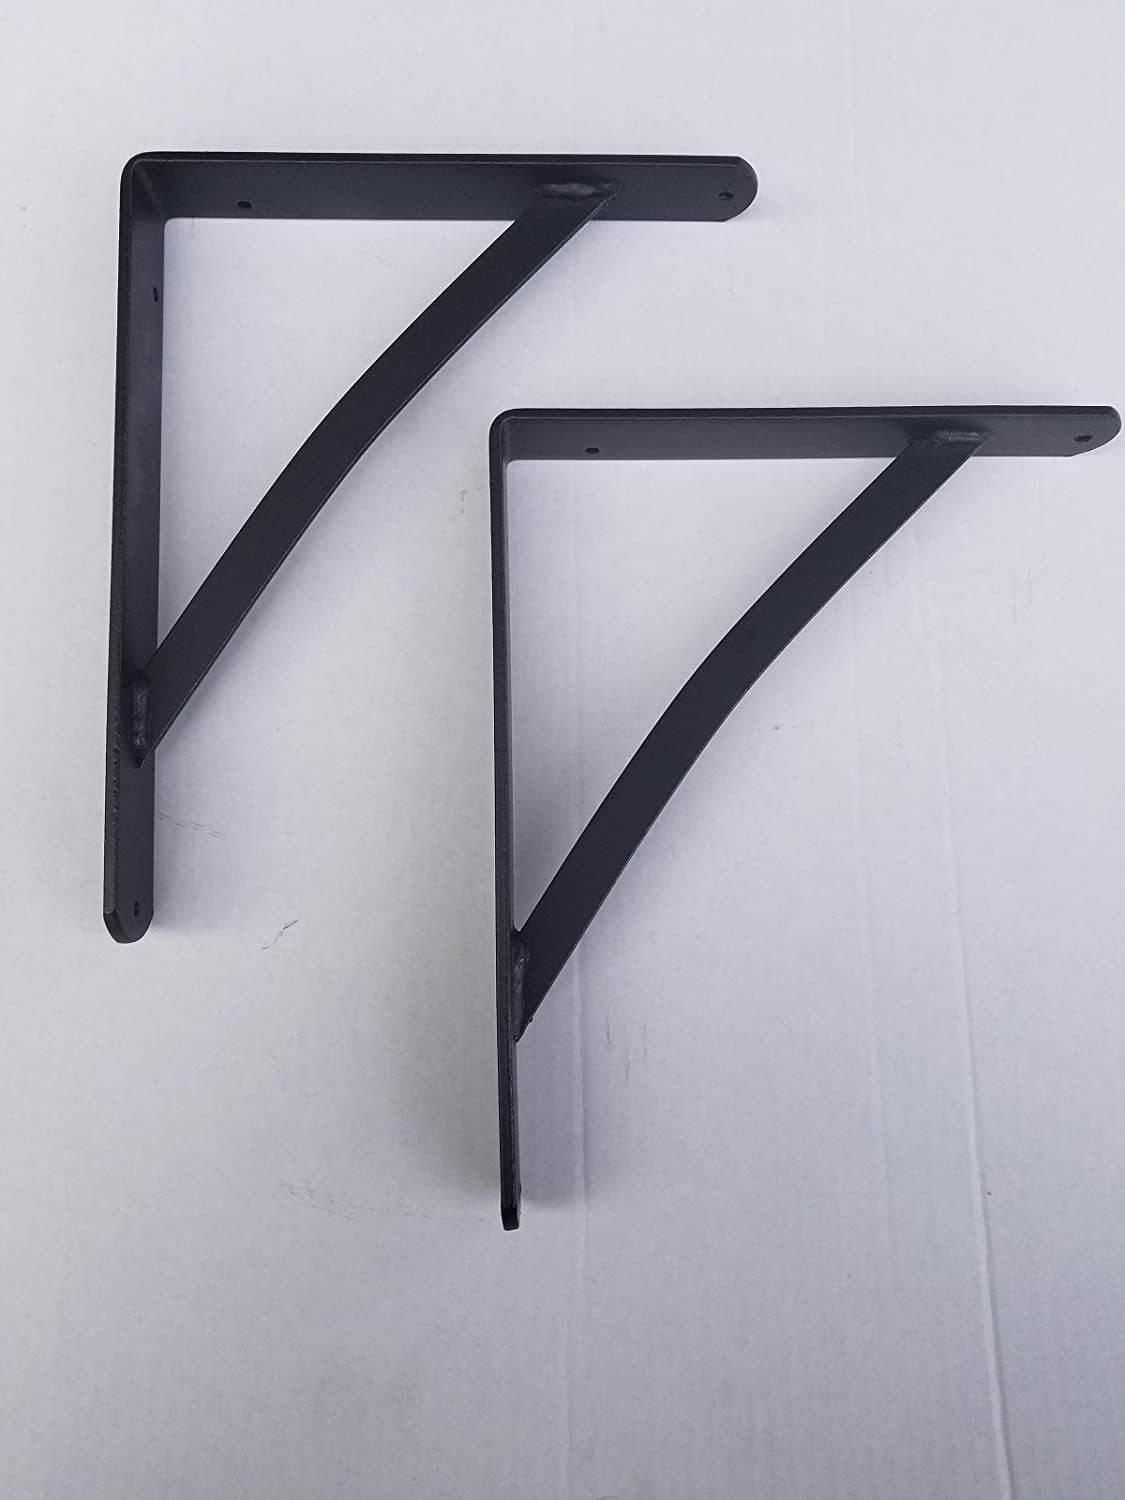 Wrought Iron Large Shelf Brackets Set of Two - Hand Made by Amish of Lancaster County PA